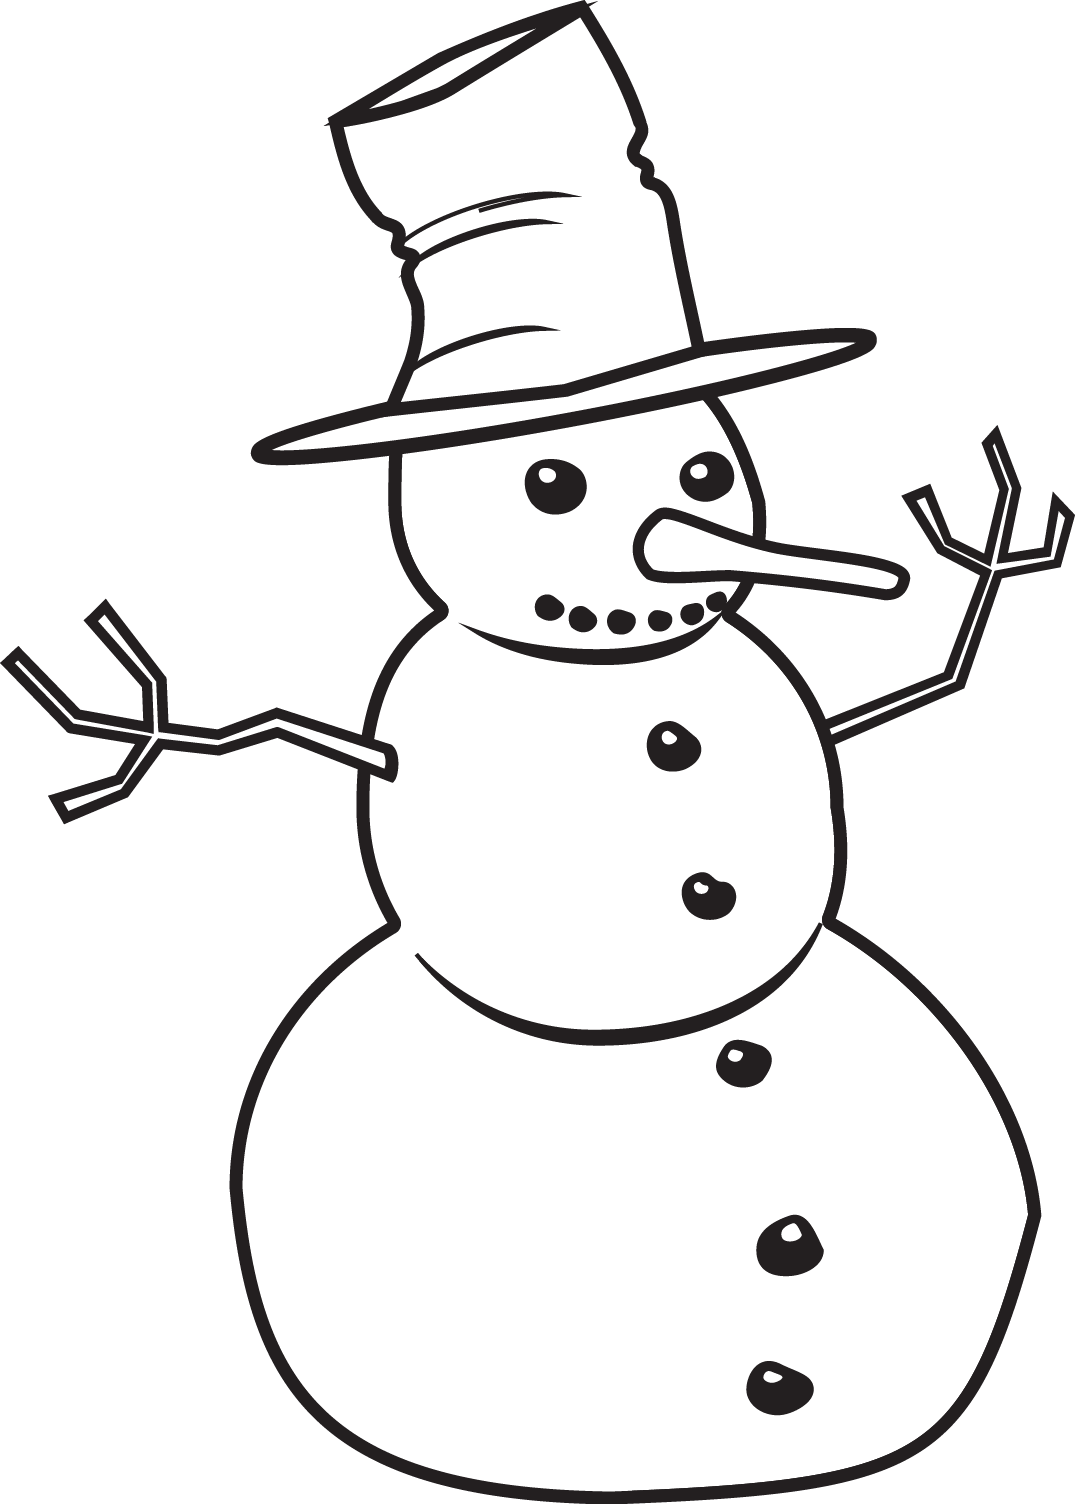 Black and white christmas clipart free png transparent download Free Black And White Snowman Clipart & Free Black And White Snowman ... png transparent download